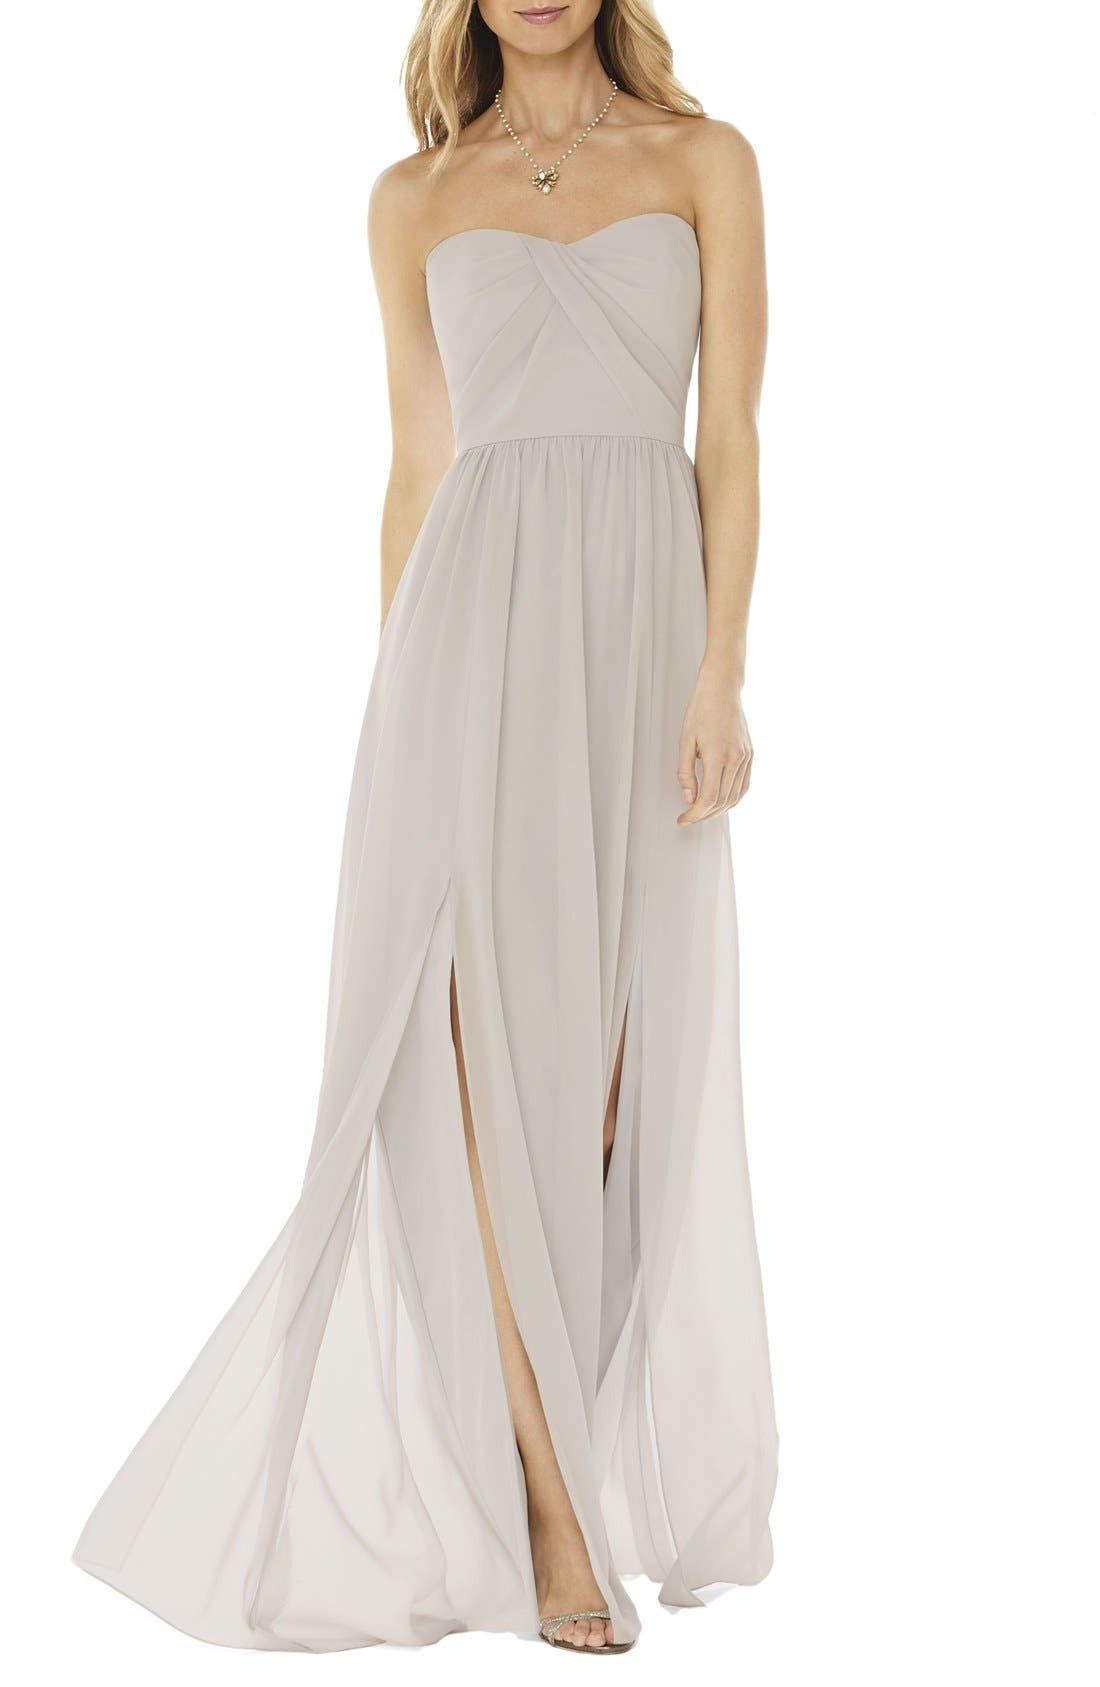 Bridesmaid wedding party dresses nordstrom social bridesmaids strapless georgette gown ombrellifo Gallery